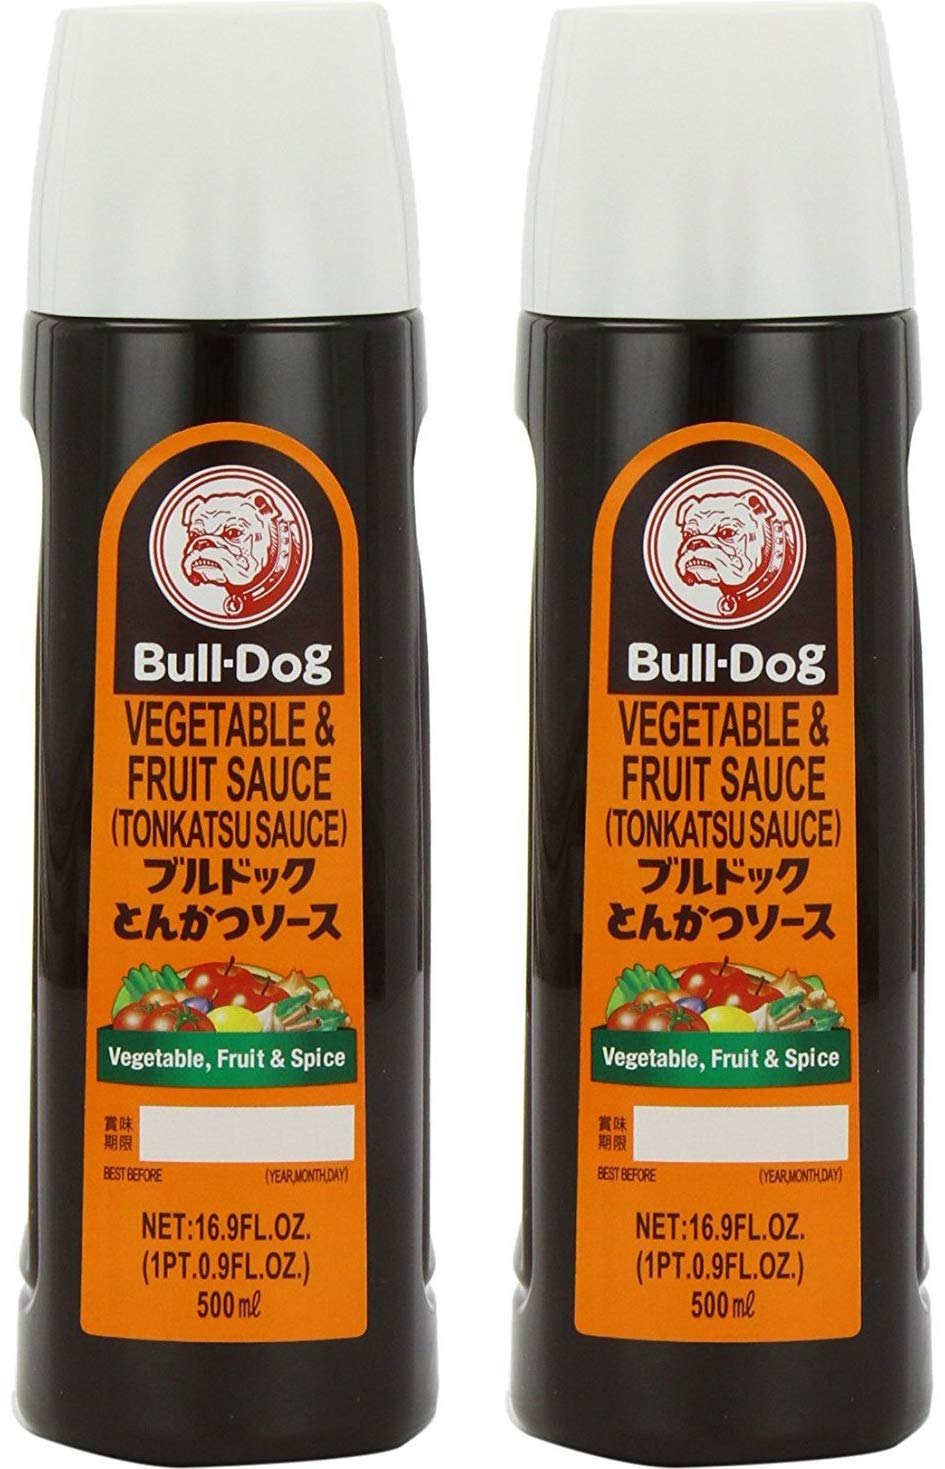 Bulldog Sauce Steak Tonkatsu Amazon Com Grocery Gourmet Food